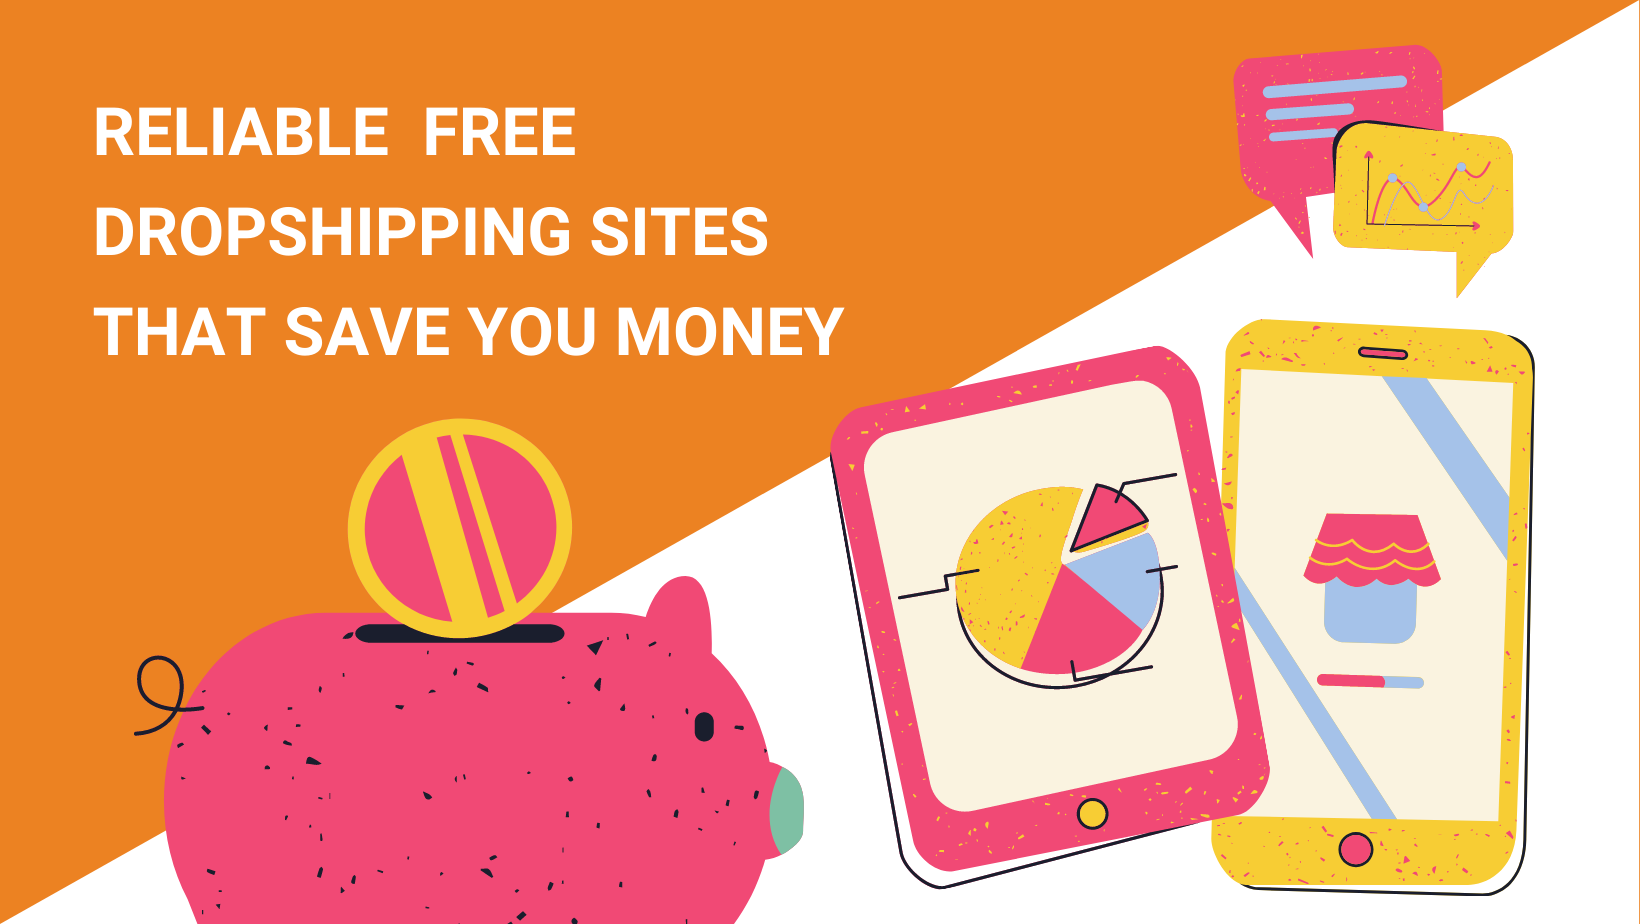 RELIABLE FREE DROPSHIPPING SITES THAT SAVE YOU MONEY